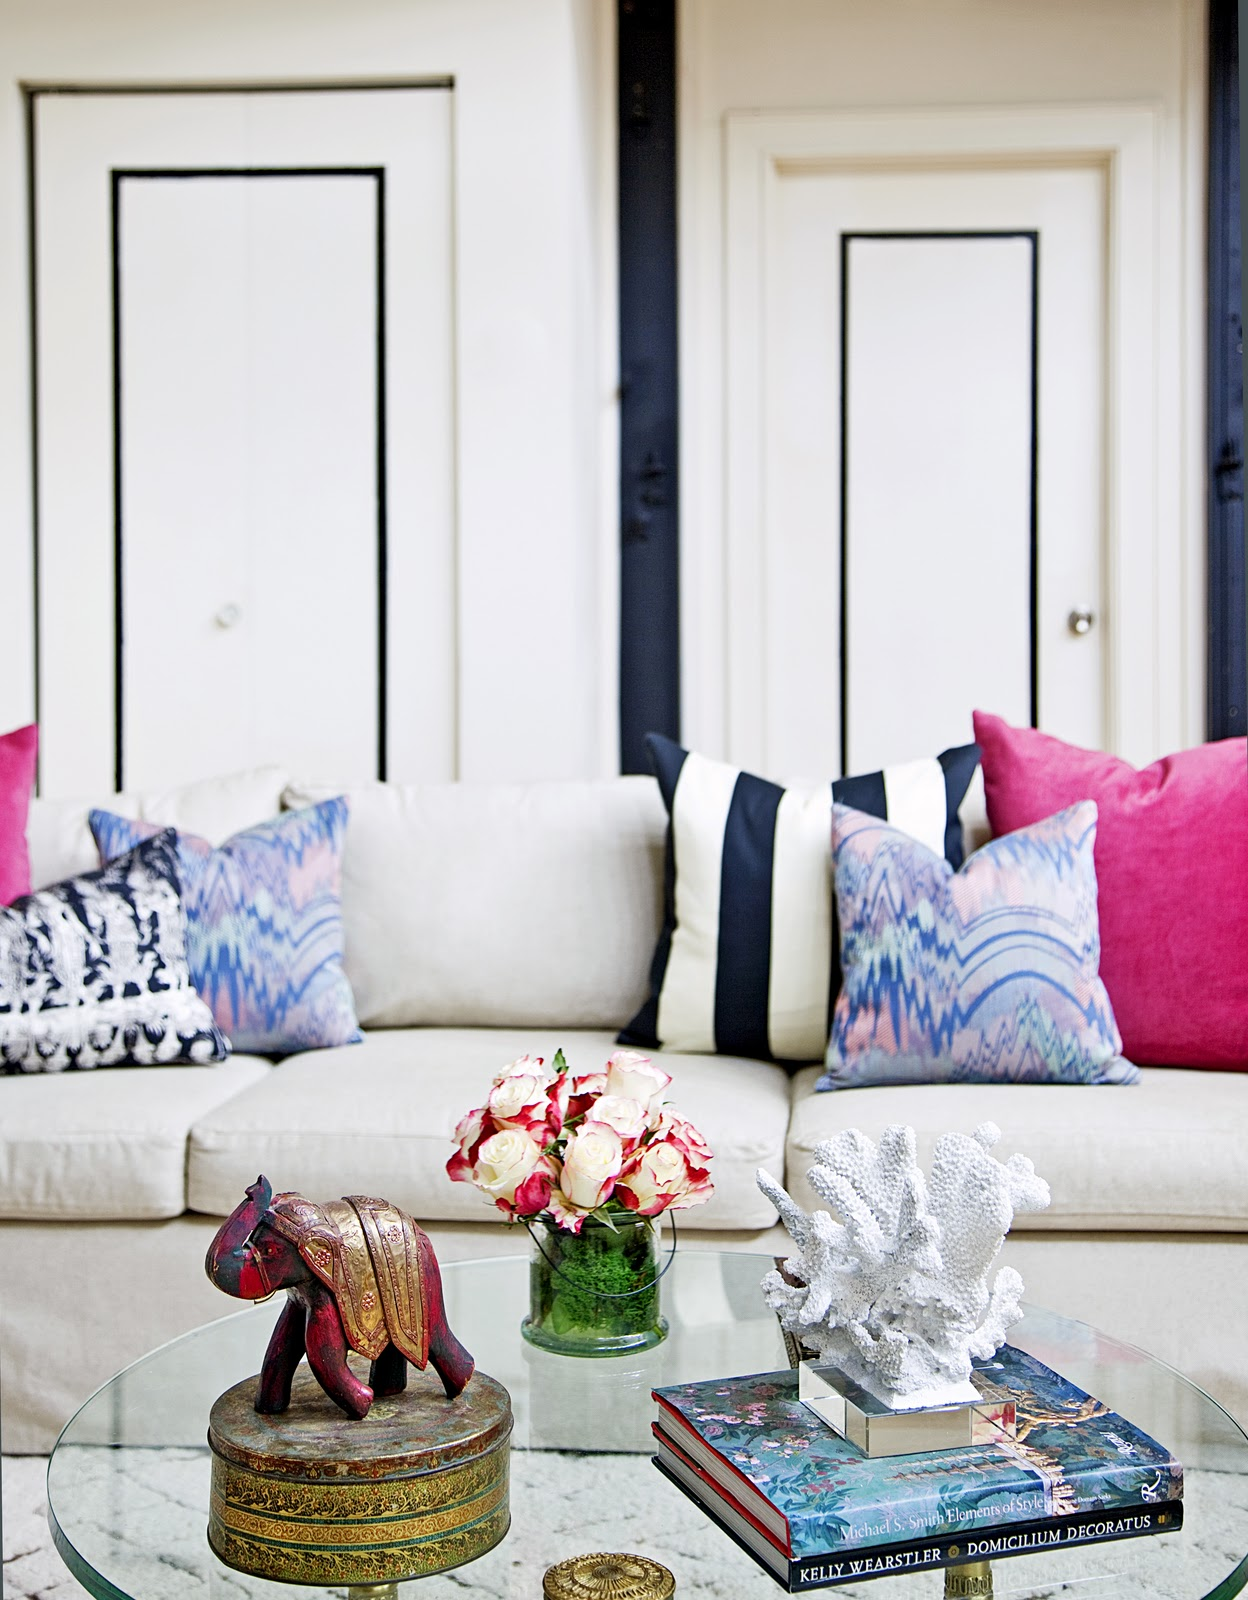 Slipcovered+sofa++colorful+pillows+design+manifest+living+room